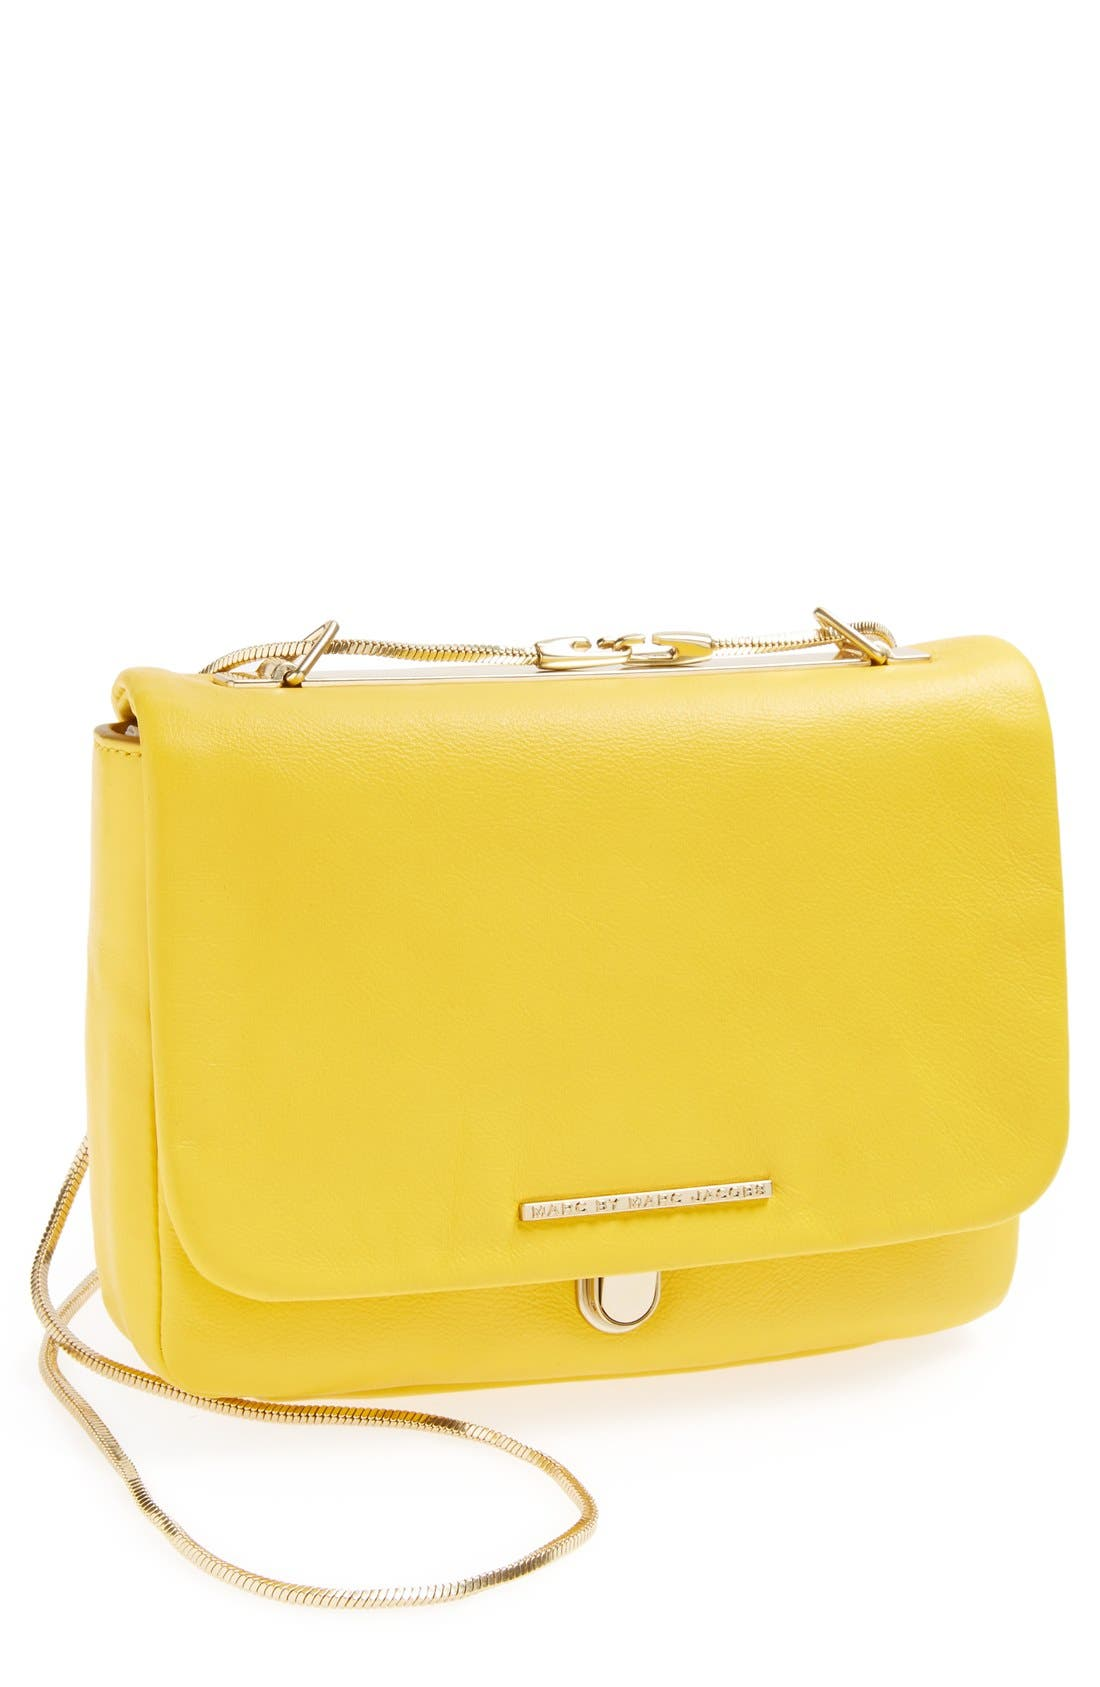 Main Image - MARC BY MARC JACOBS 'Third of July' Crossbody Bag